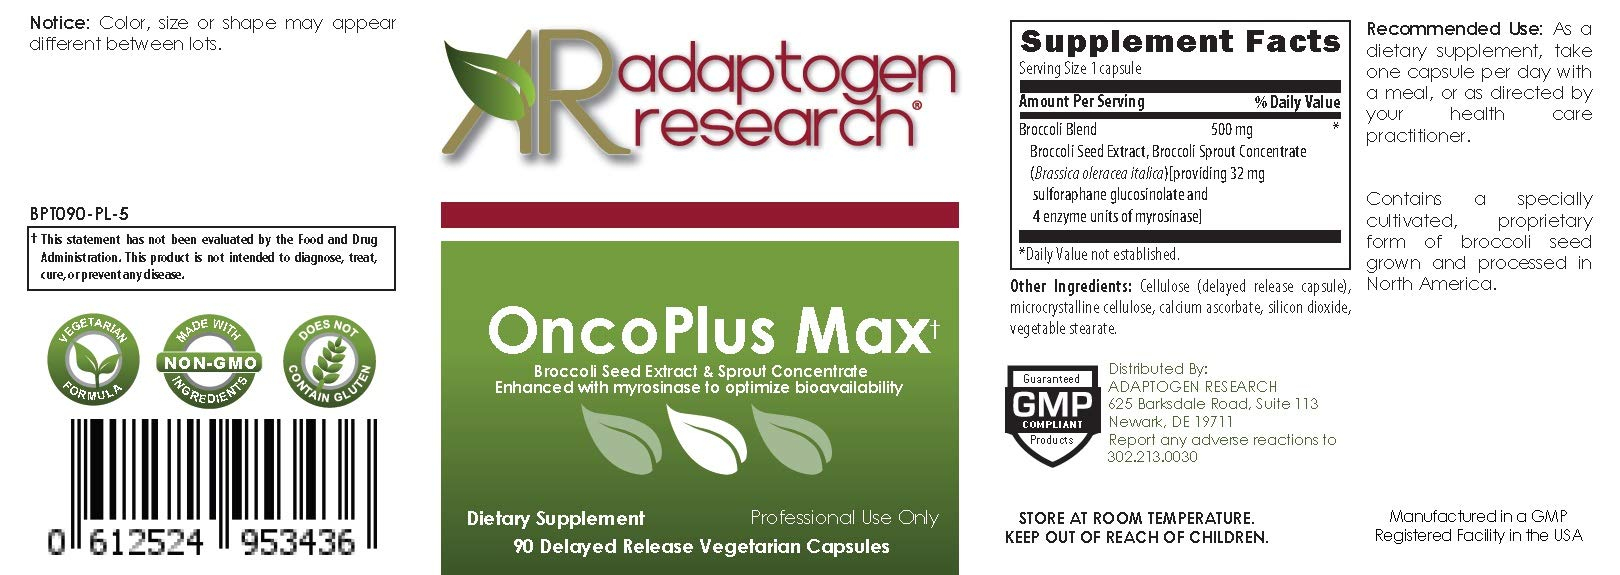 OncoPlus Max | 500mg Broccoli Seed Extract & Sprout Concentrate with Myrosinase Enzyme to Optimize Bioavailability | 8x Higher Sulforaphane BroccoRaphanin Potential | 90 DR VCaps | Adaptogen Research by Adaptogen Research (Image #2)